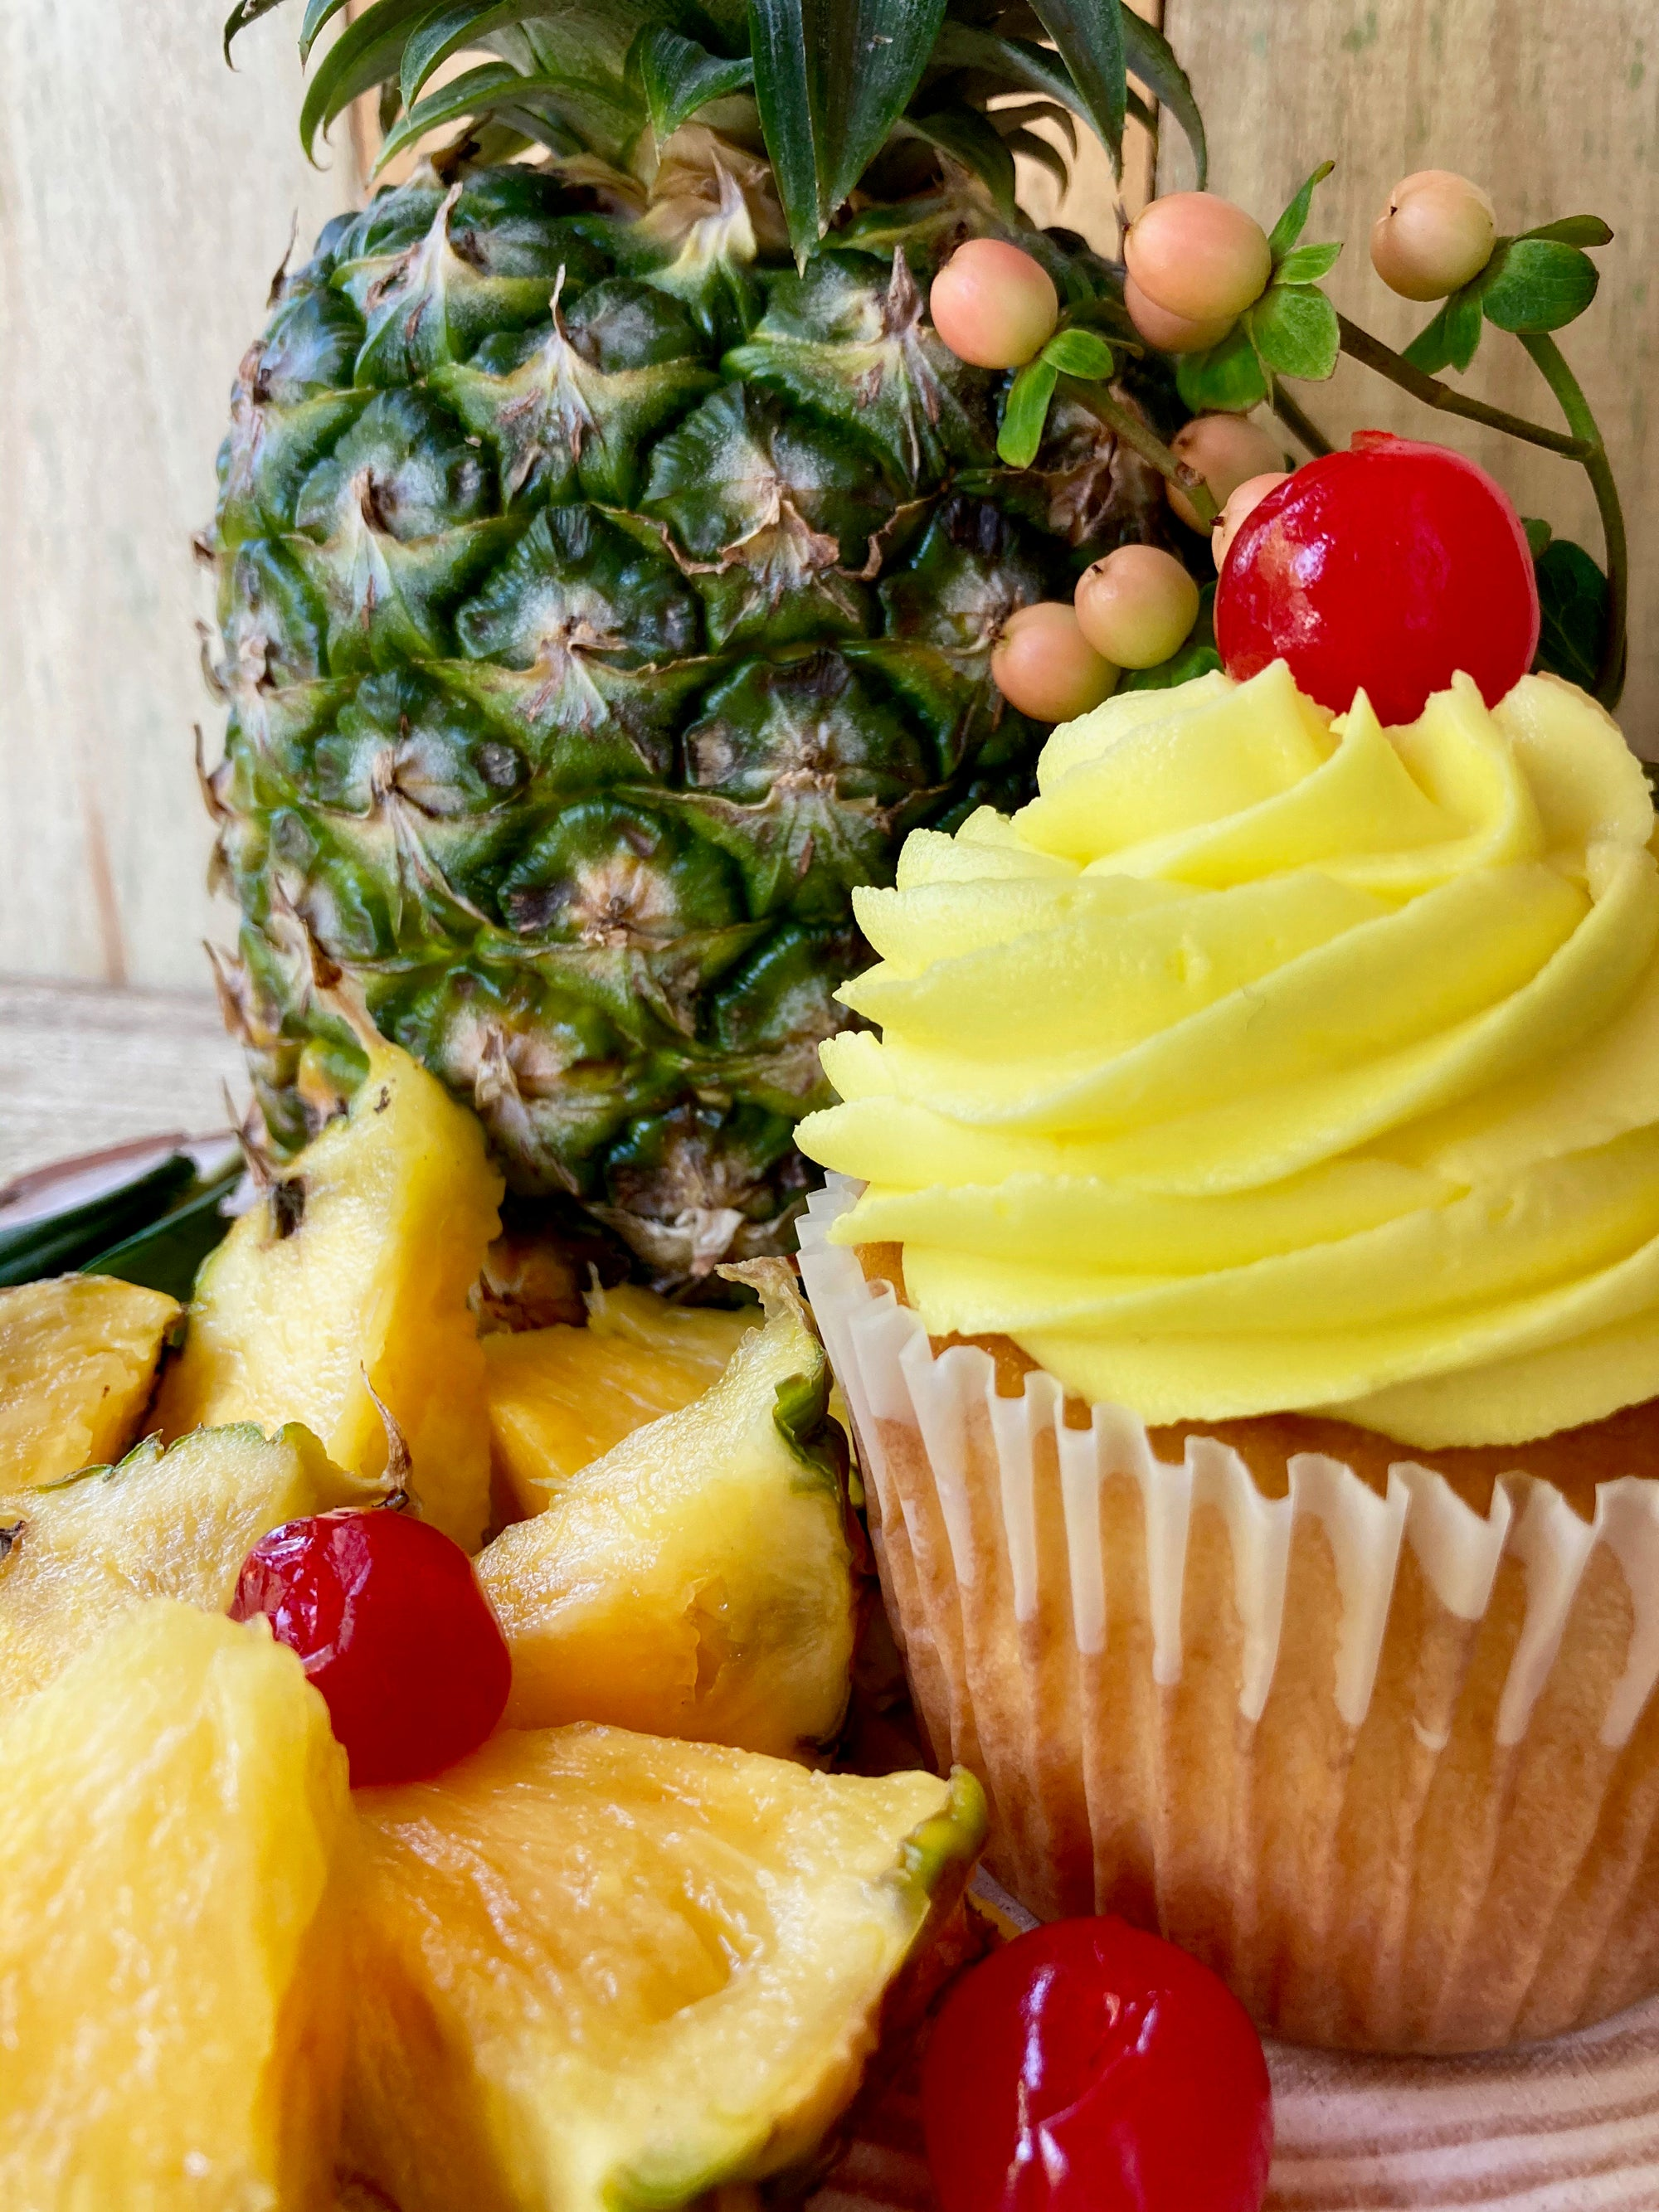 Pineapple Upside-Down Martini Cupcake